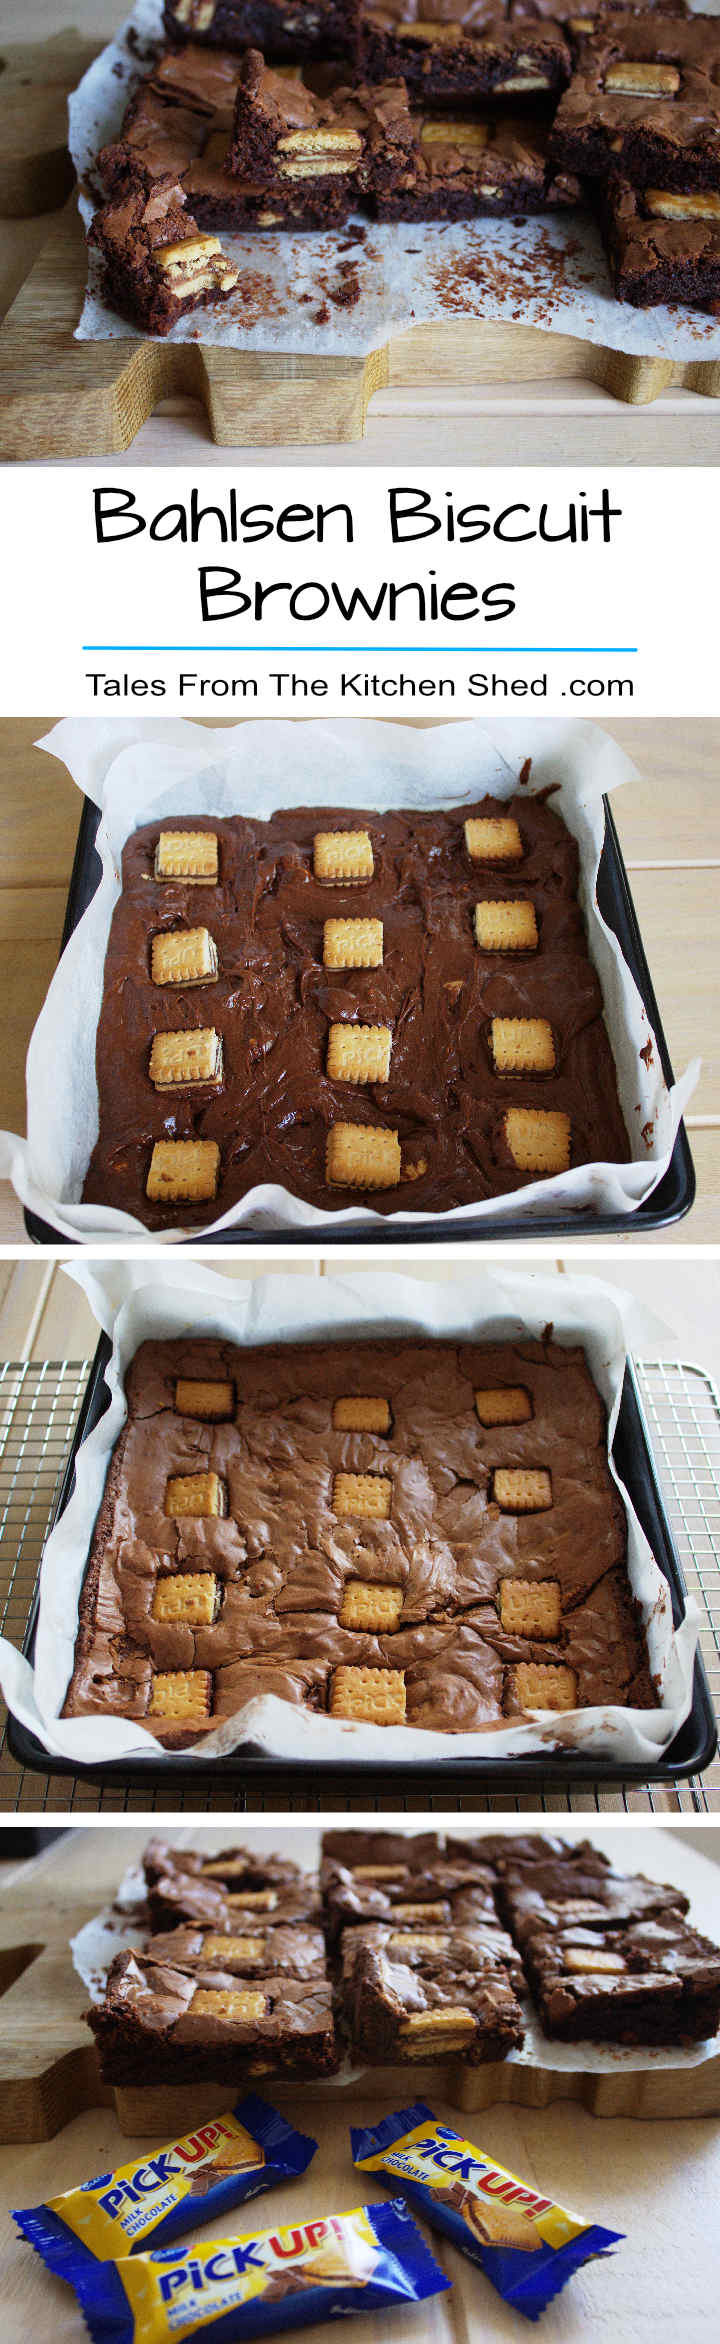 Biscuit Brownies : Deliciously decadent gooey brownies filled with little bites of crunchy chocolate biscuit, with the characteristic papery crust and dotted with PickUp! Minis. Give your brownies a tasty biscuit twist!